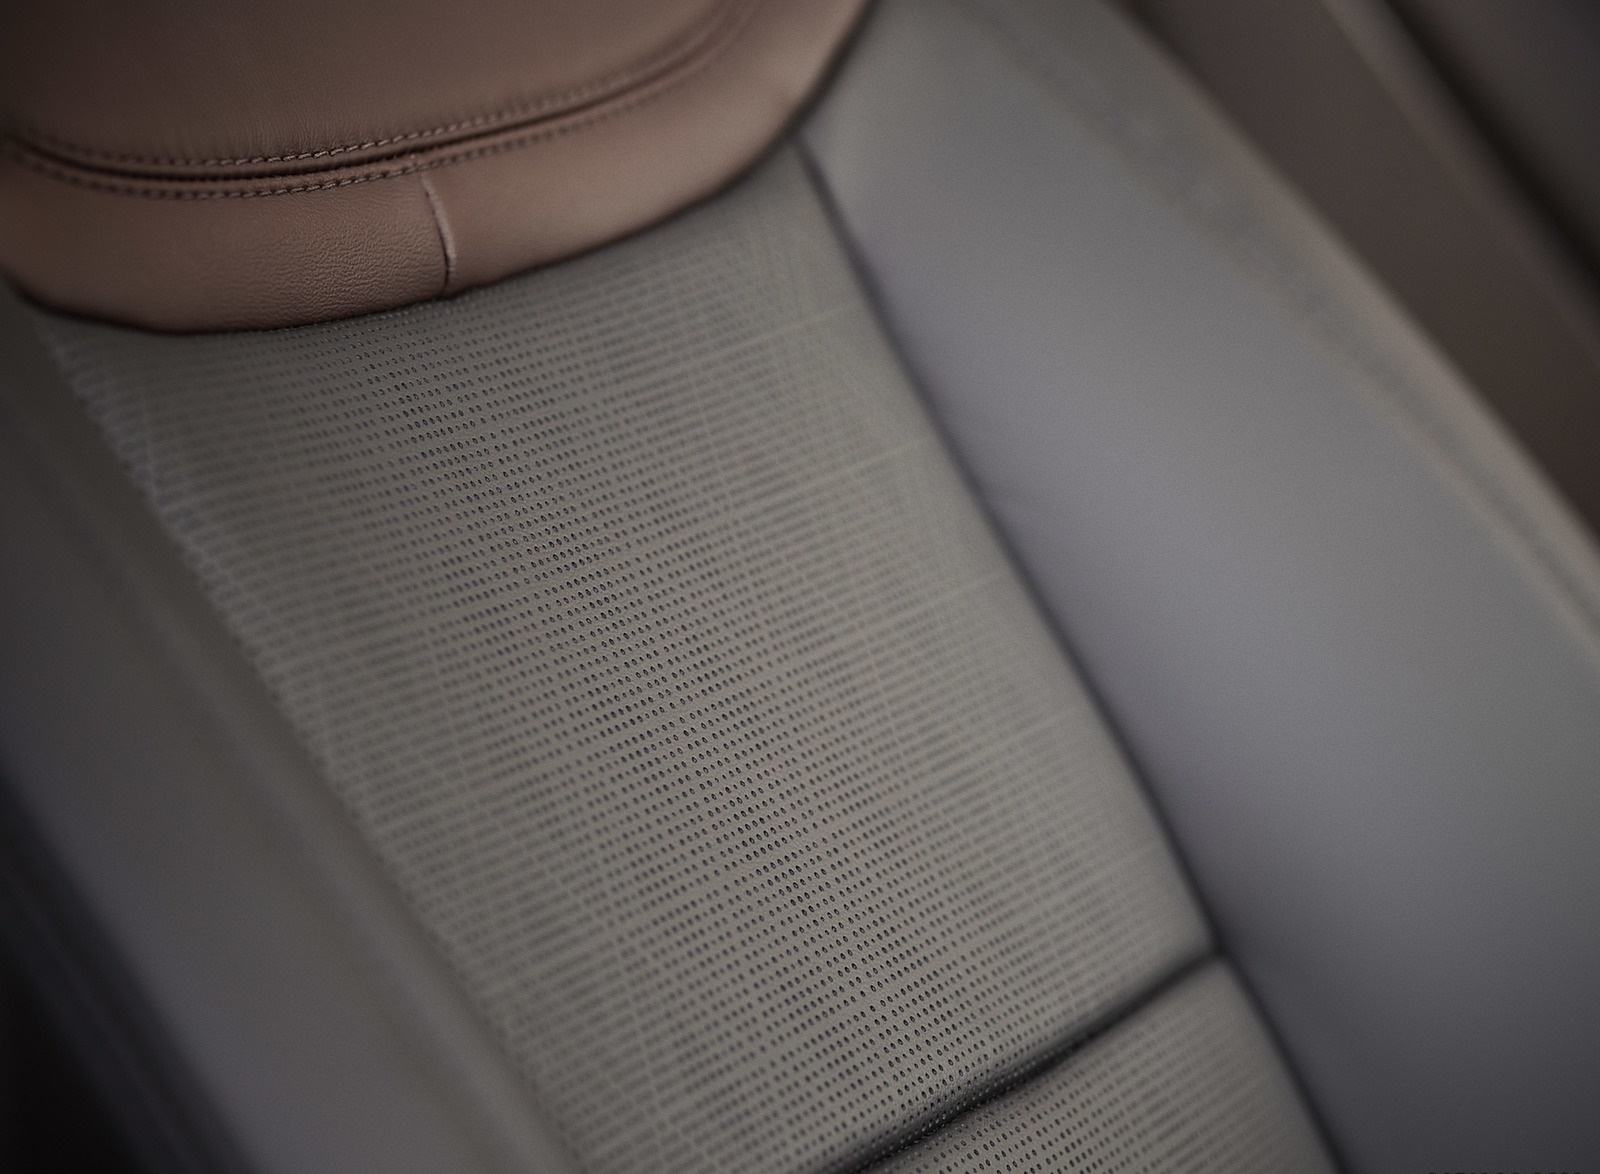 2020 Ford Explorer Interior Detail Wallpapers #23 of 24